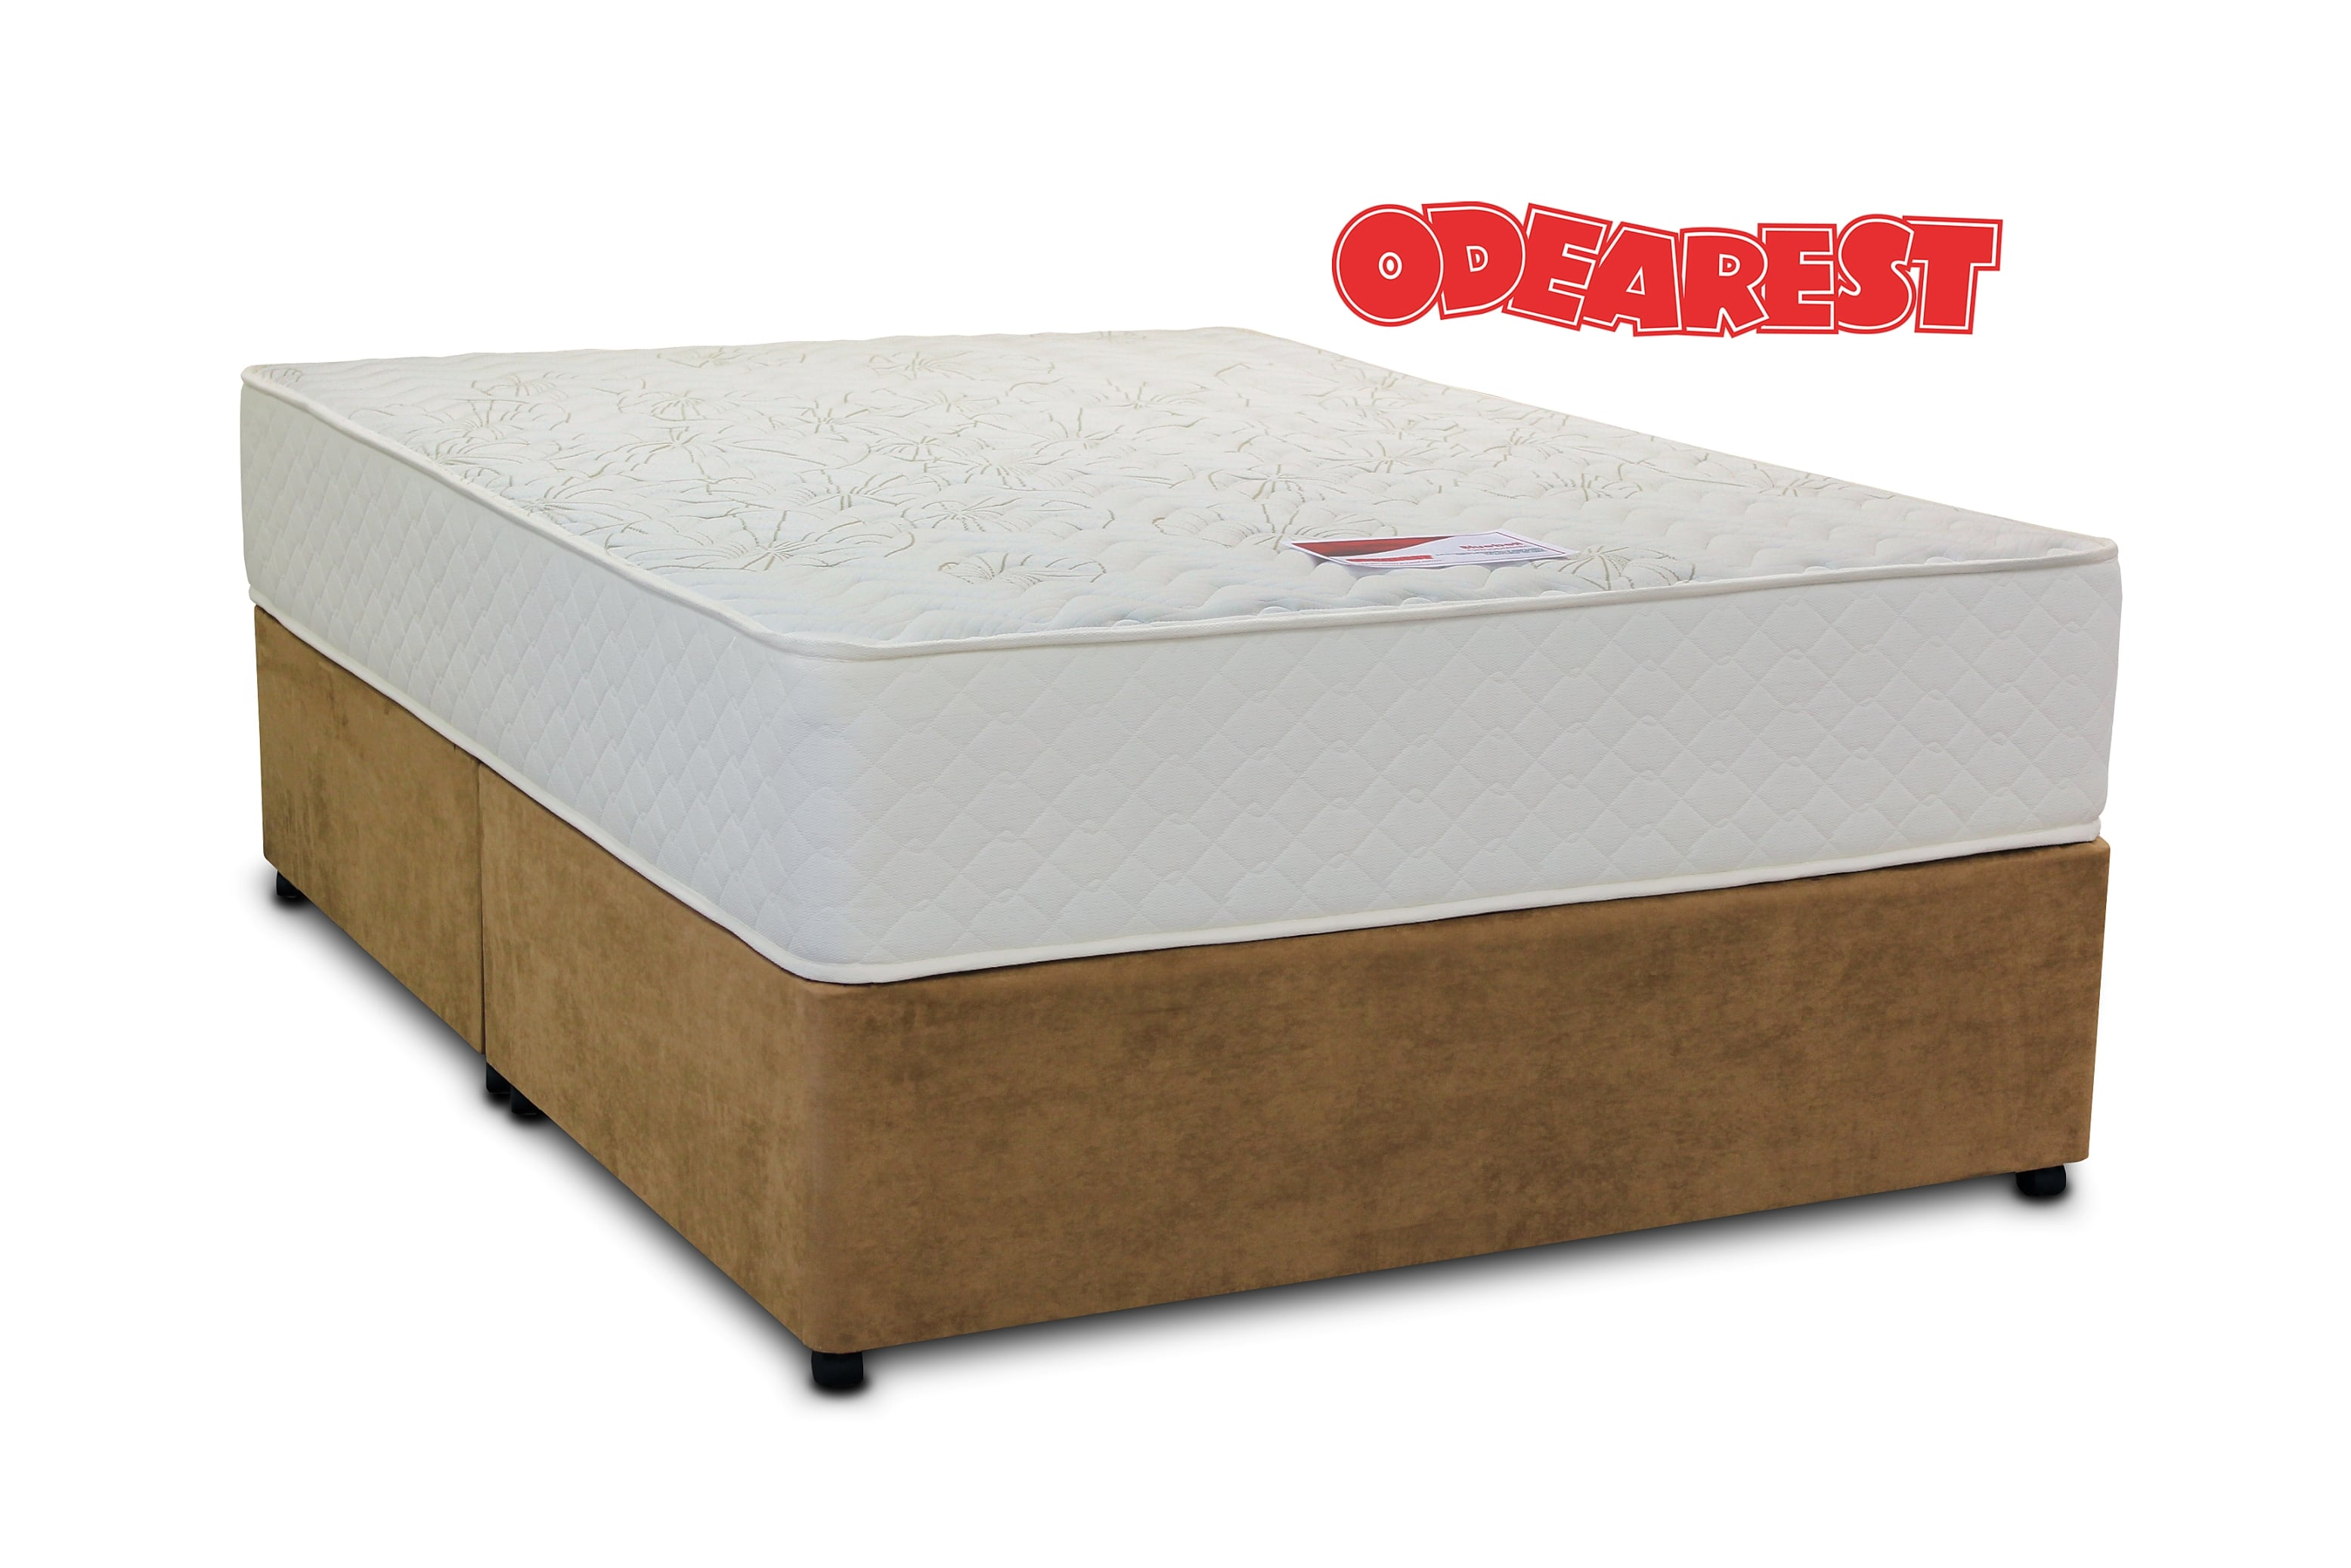 Odearest 6' Bluebell Divan Bed